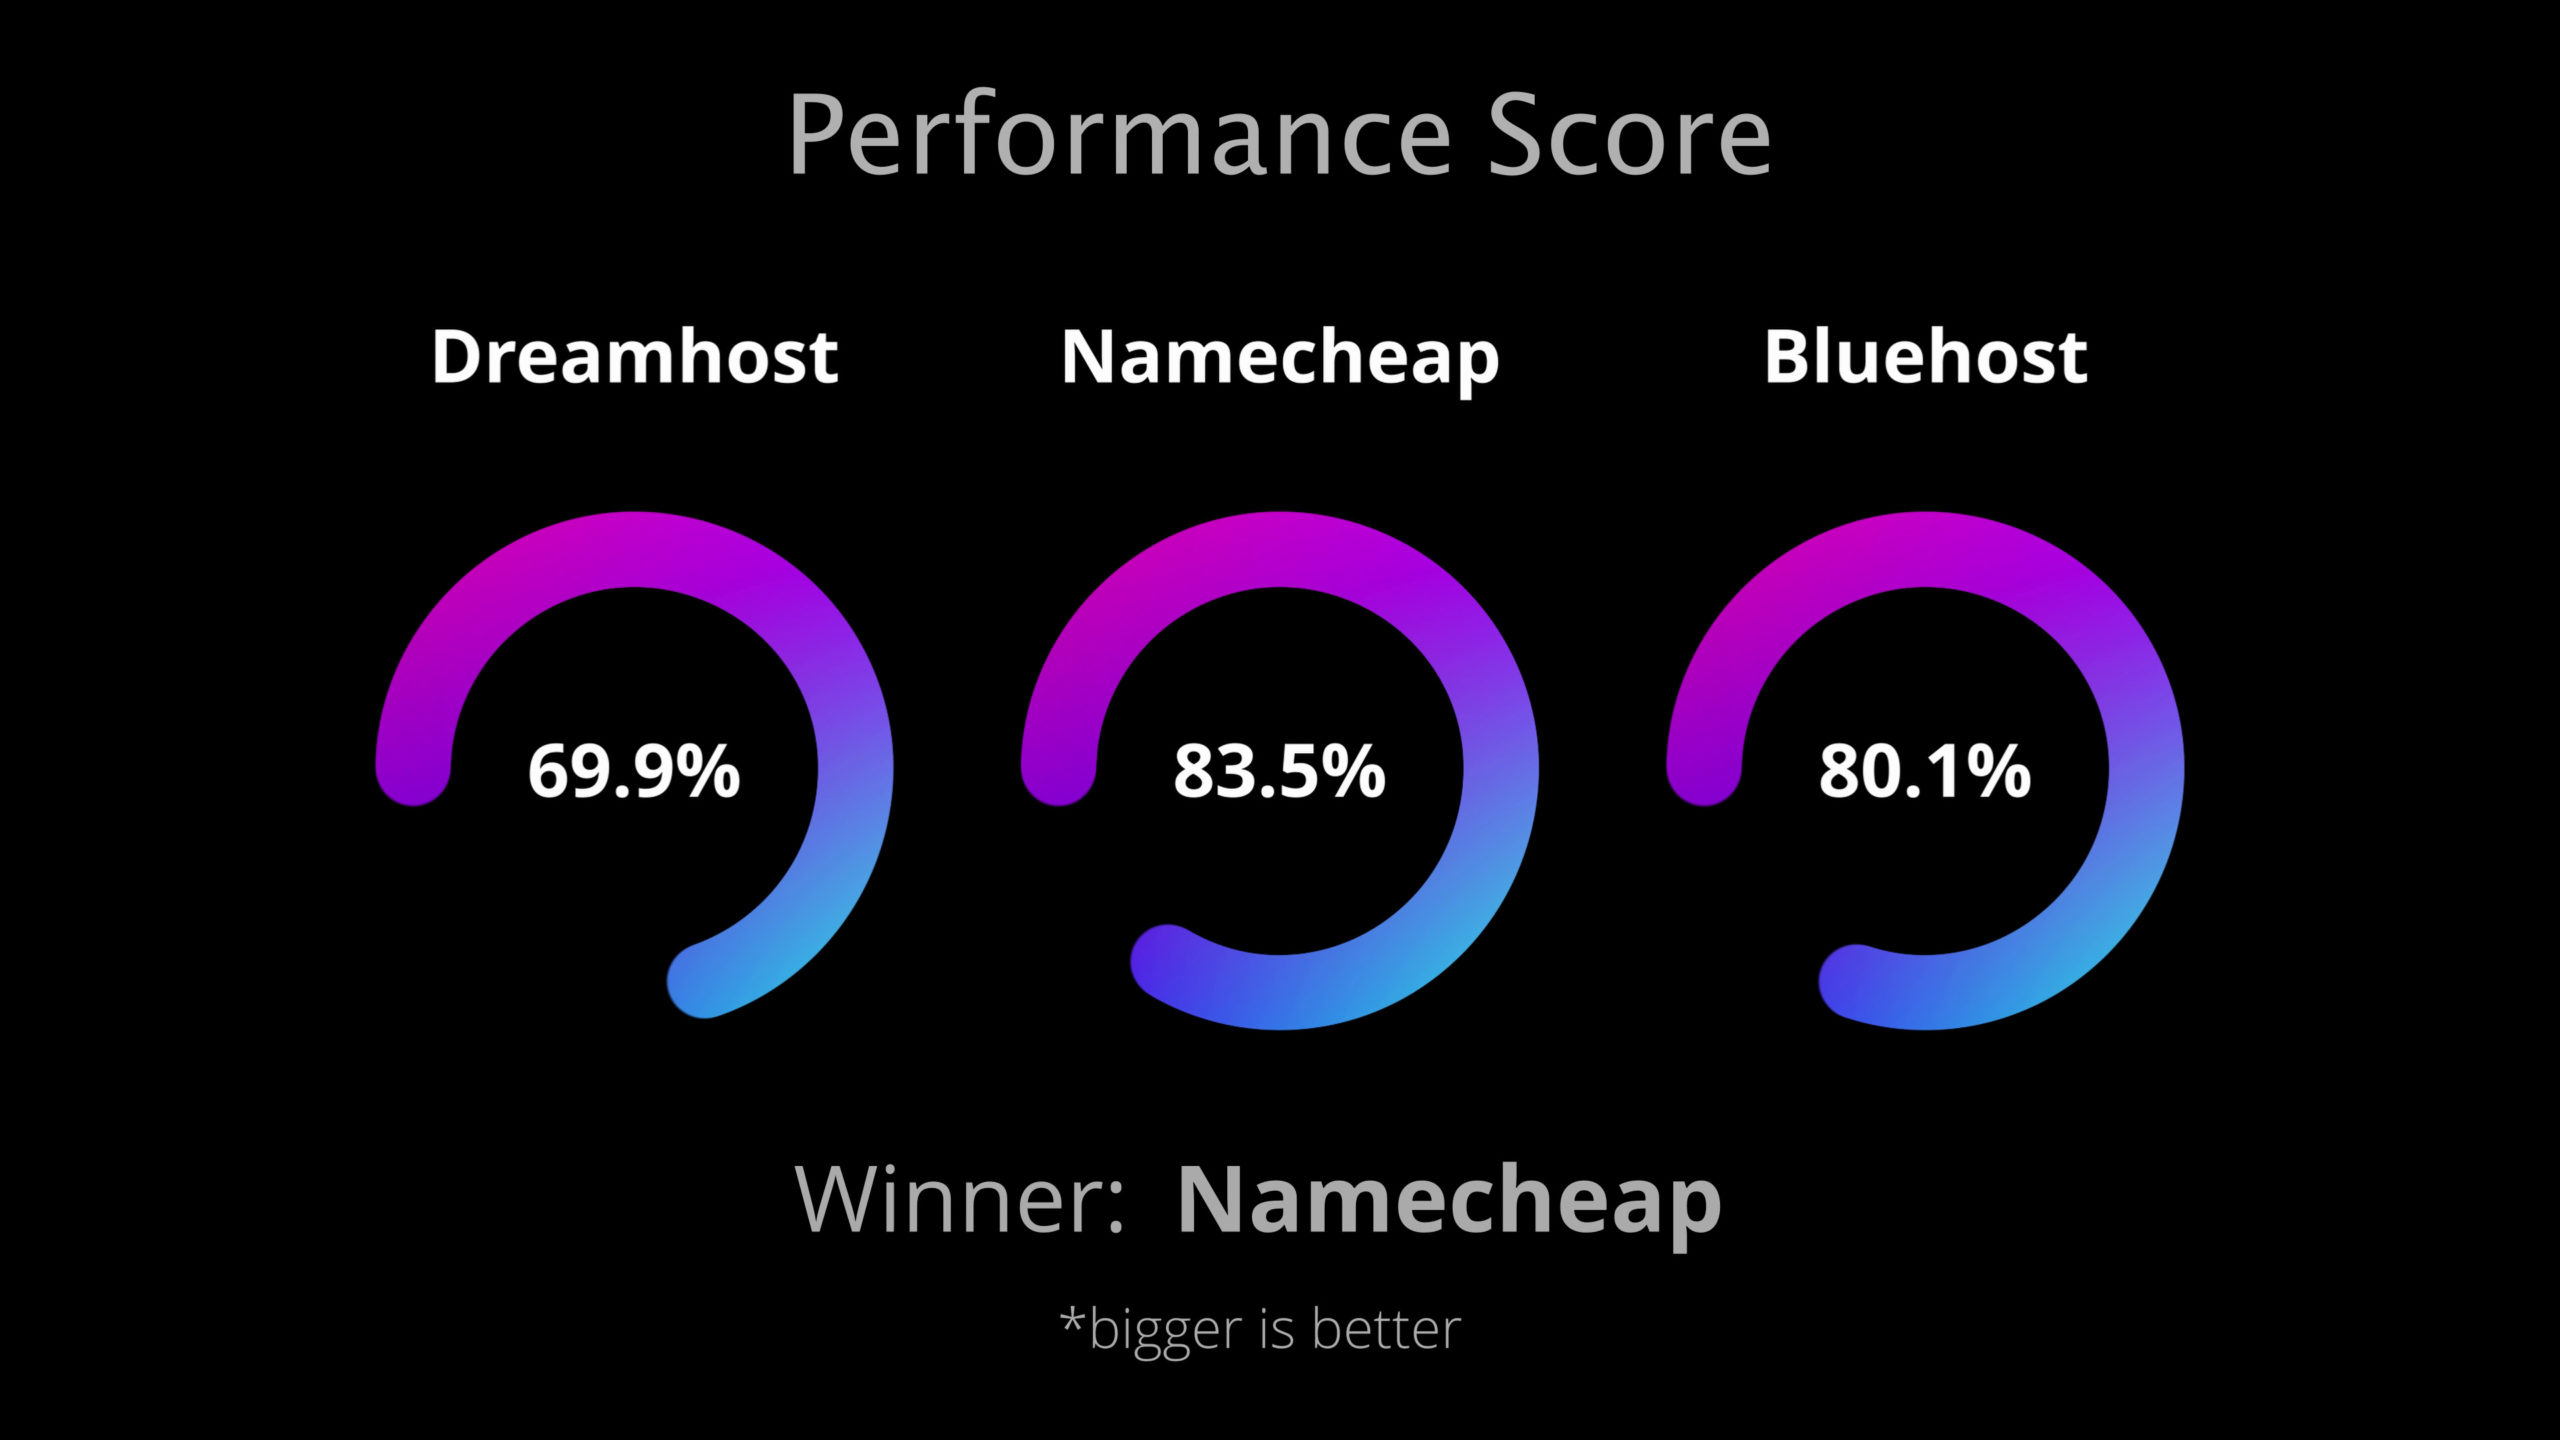 Performance audit scores for DreamHost vs Namecheap vs Bluehost